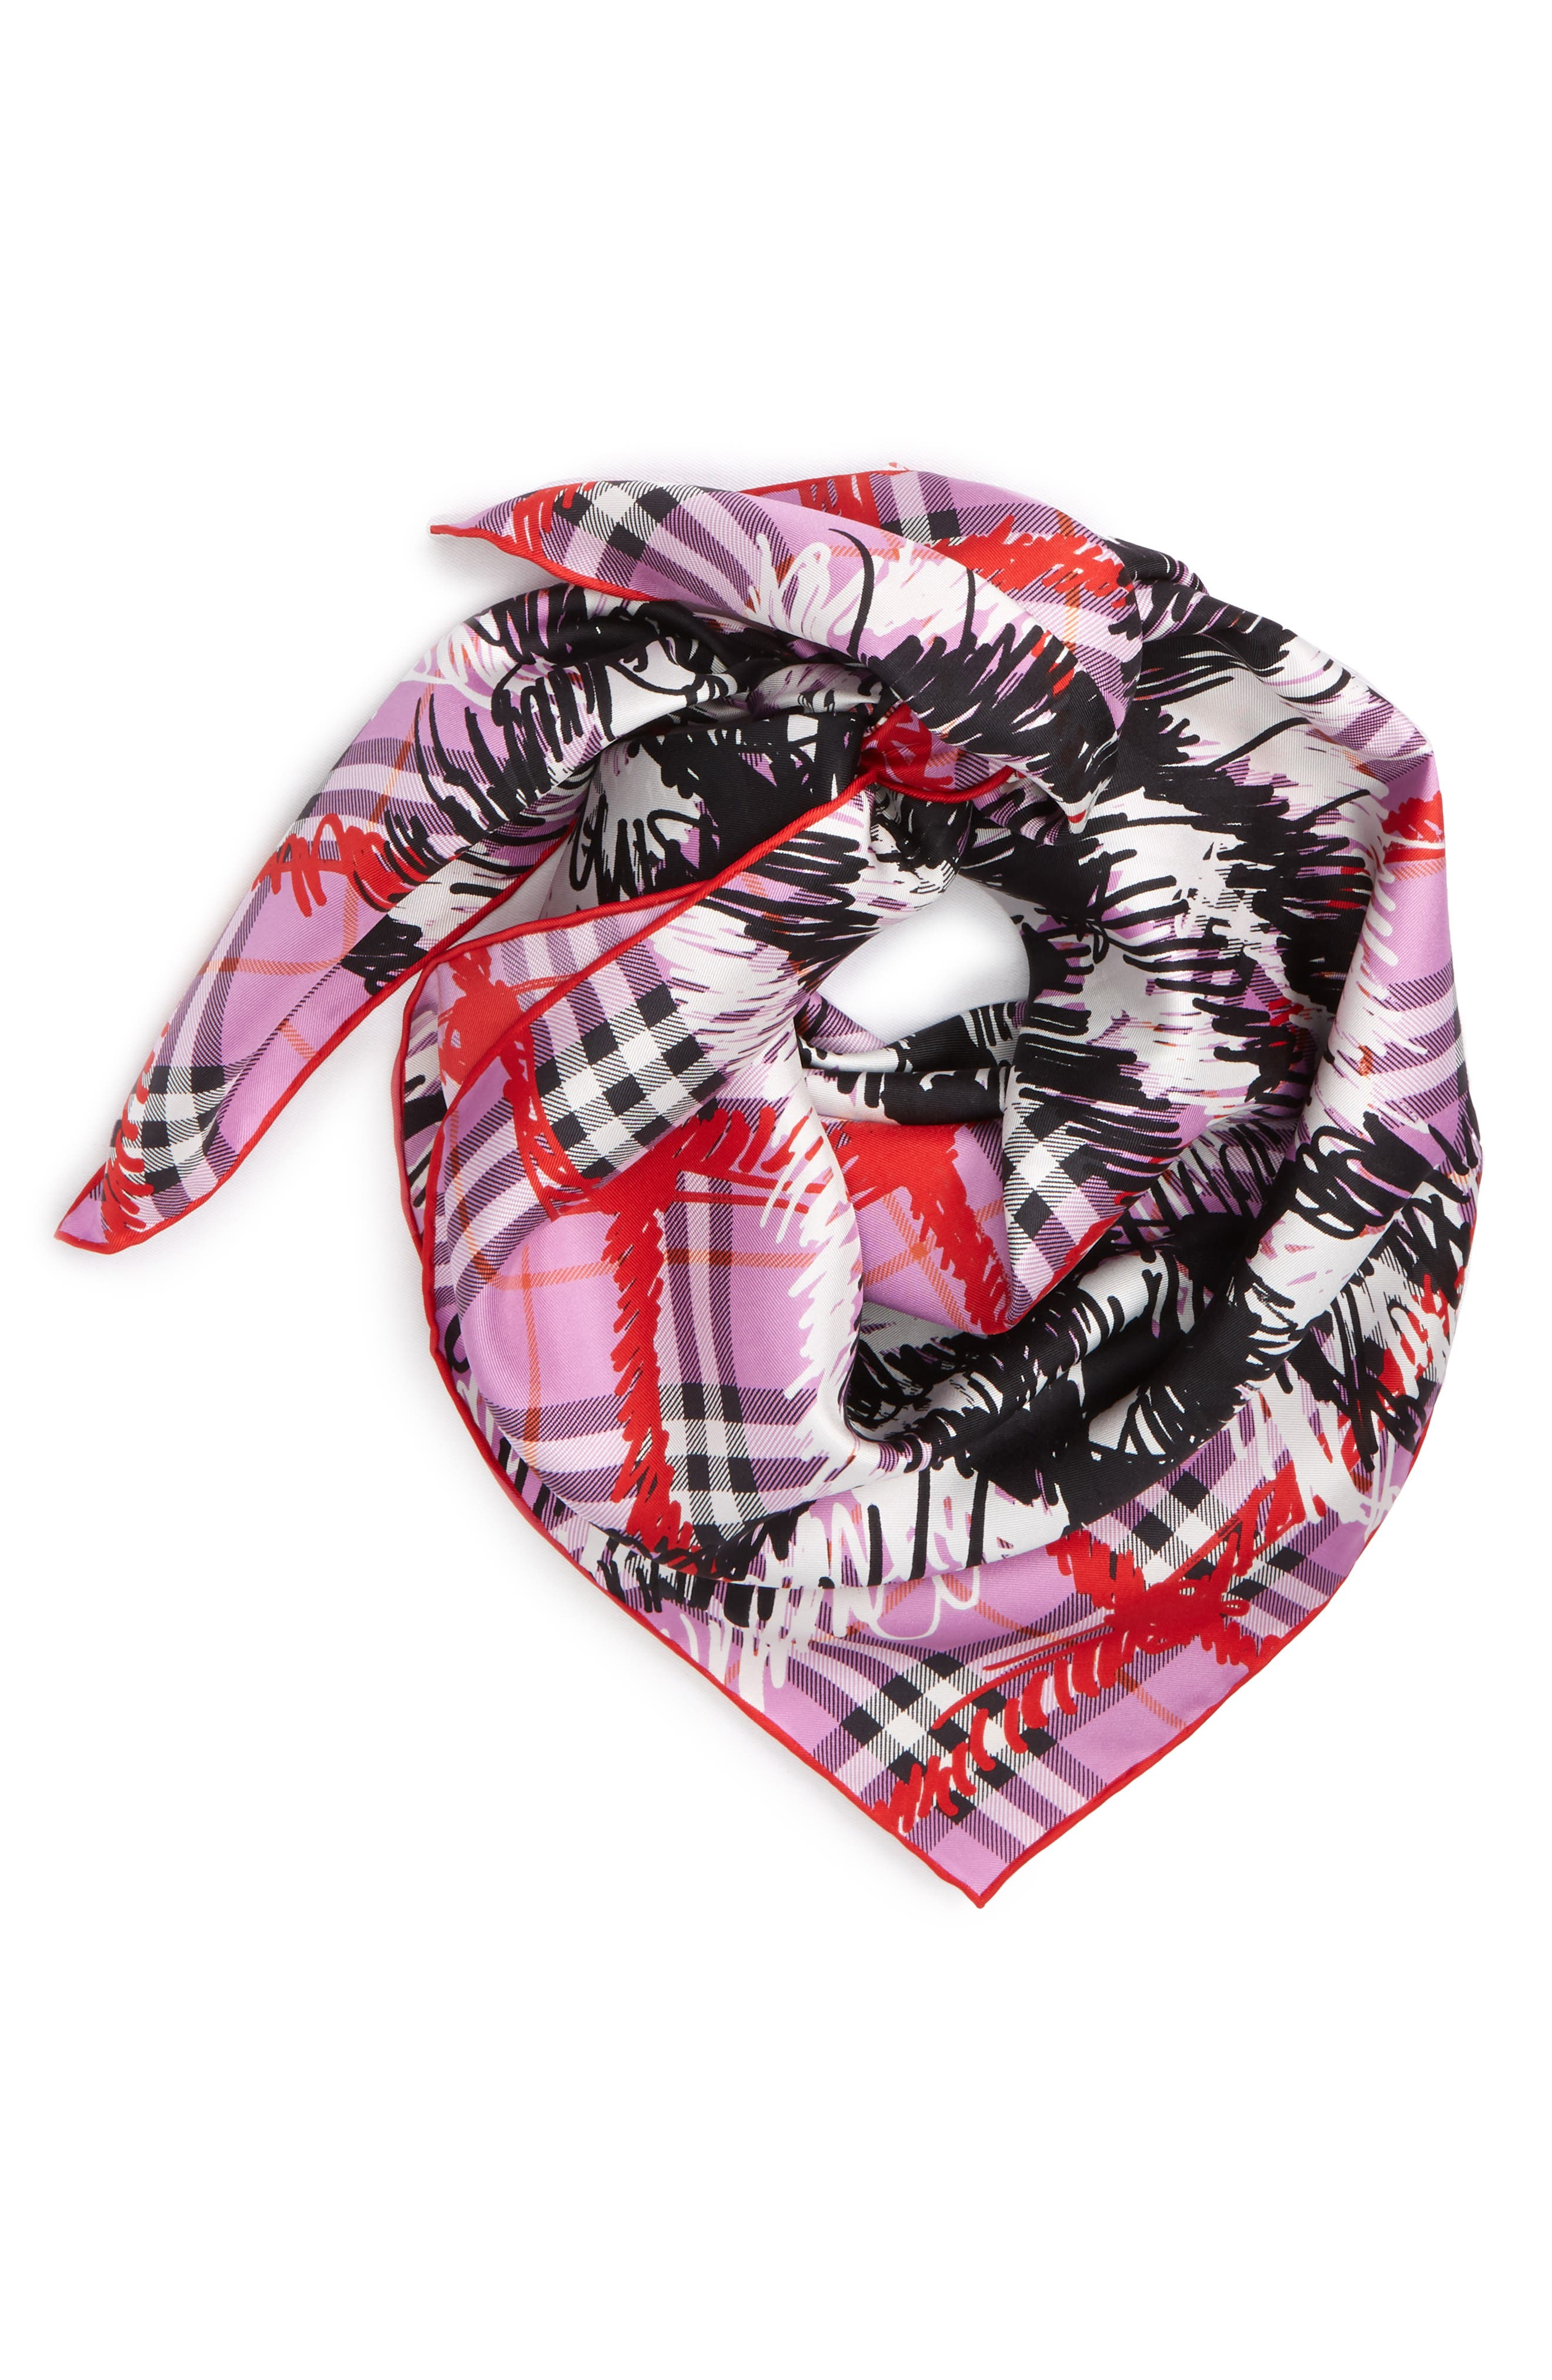 Scribble Vintage Check Silk Square Scarf,                             Alternate thumbnail 3, color,                             FUCHSIA PINK